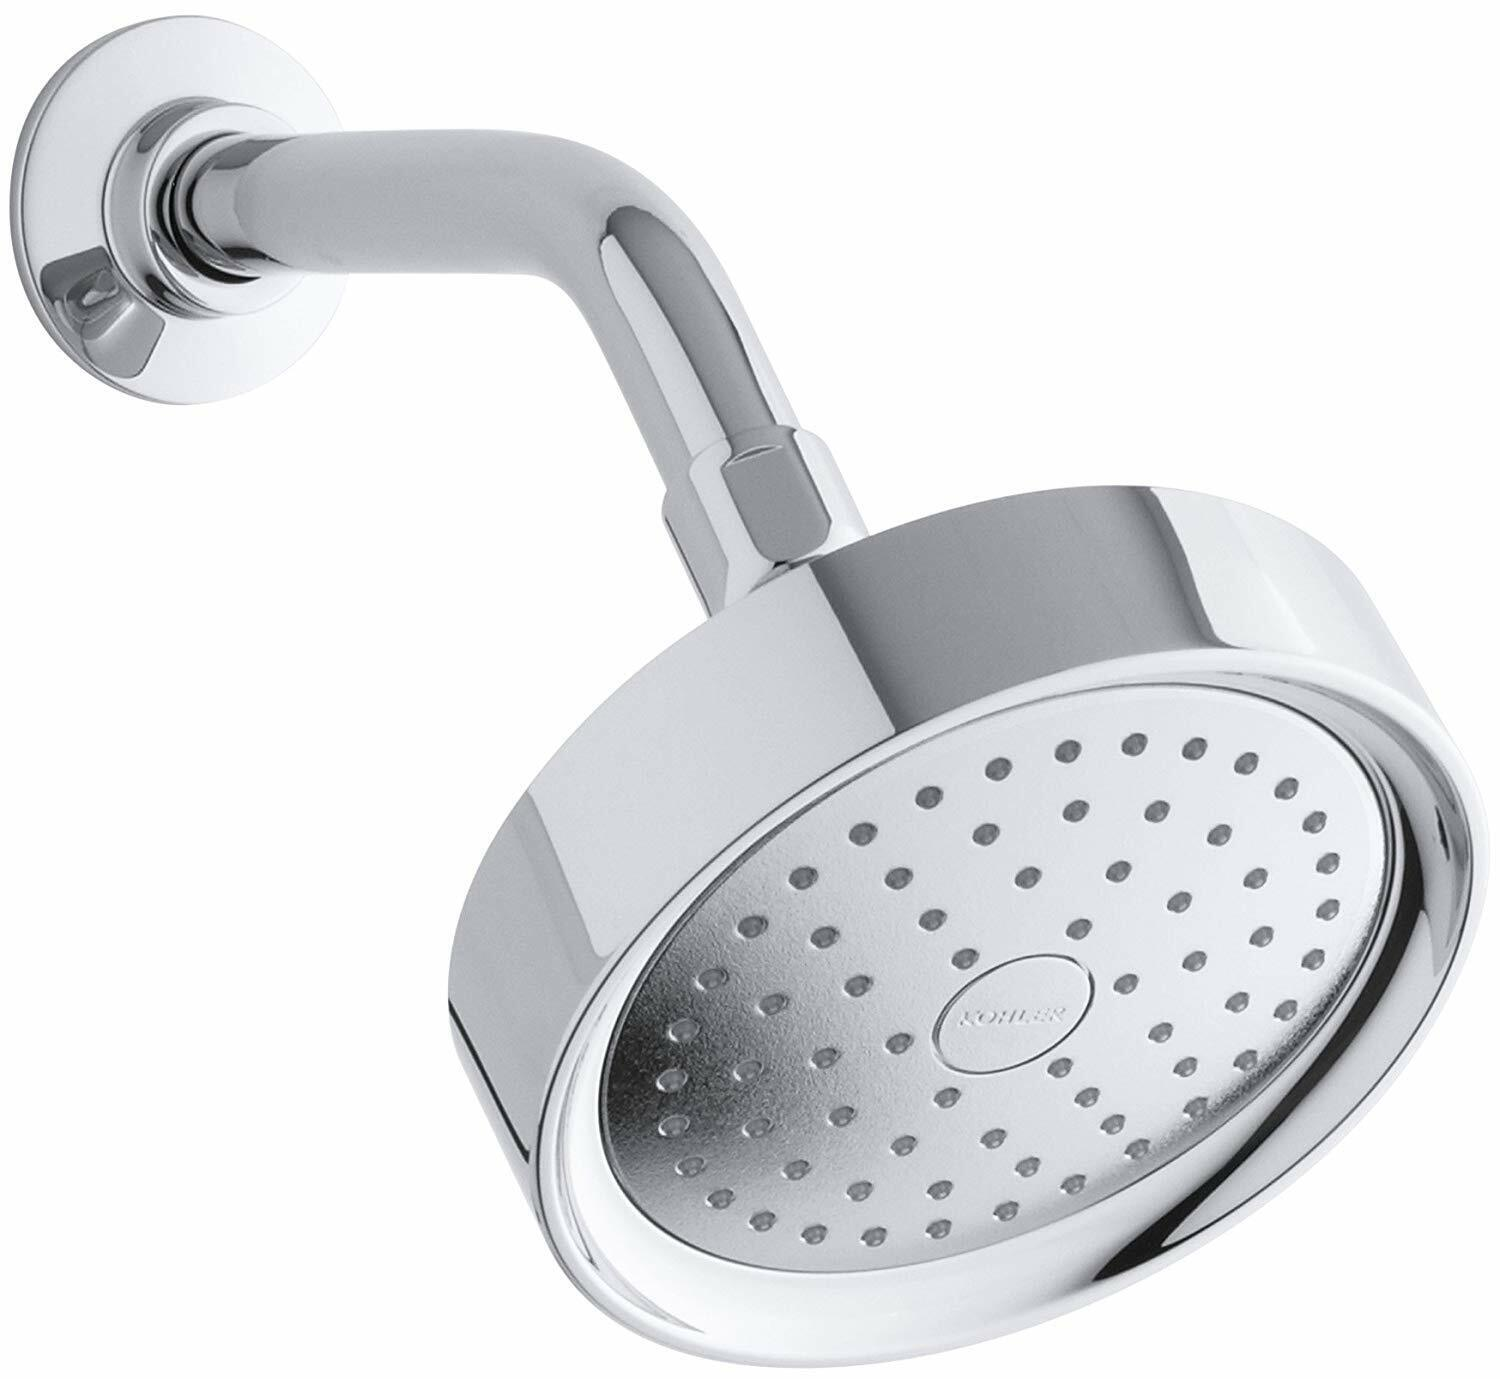 Kohler K 965 Ak Bn Purist Single Function Katalyst Showerhead Brushed Nickel